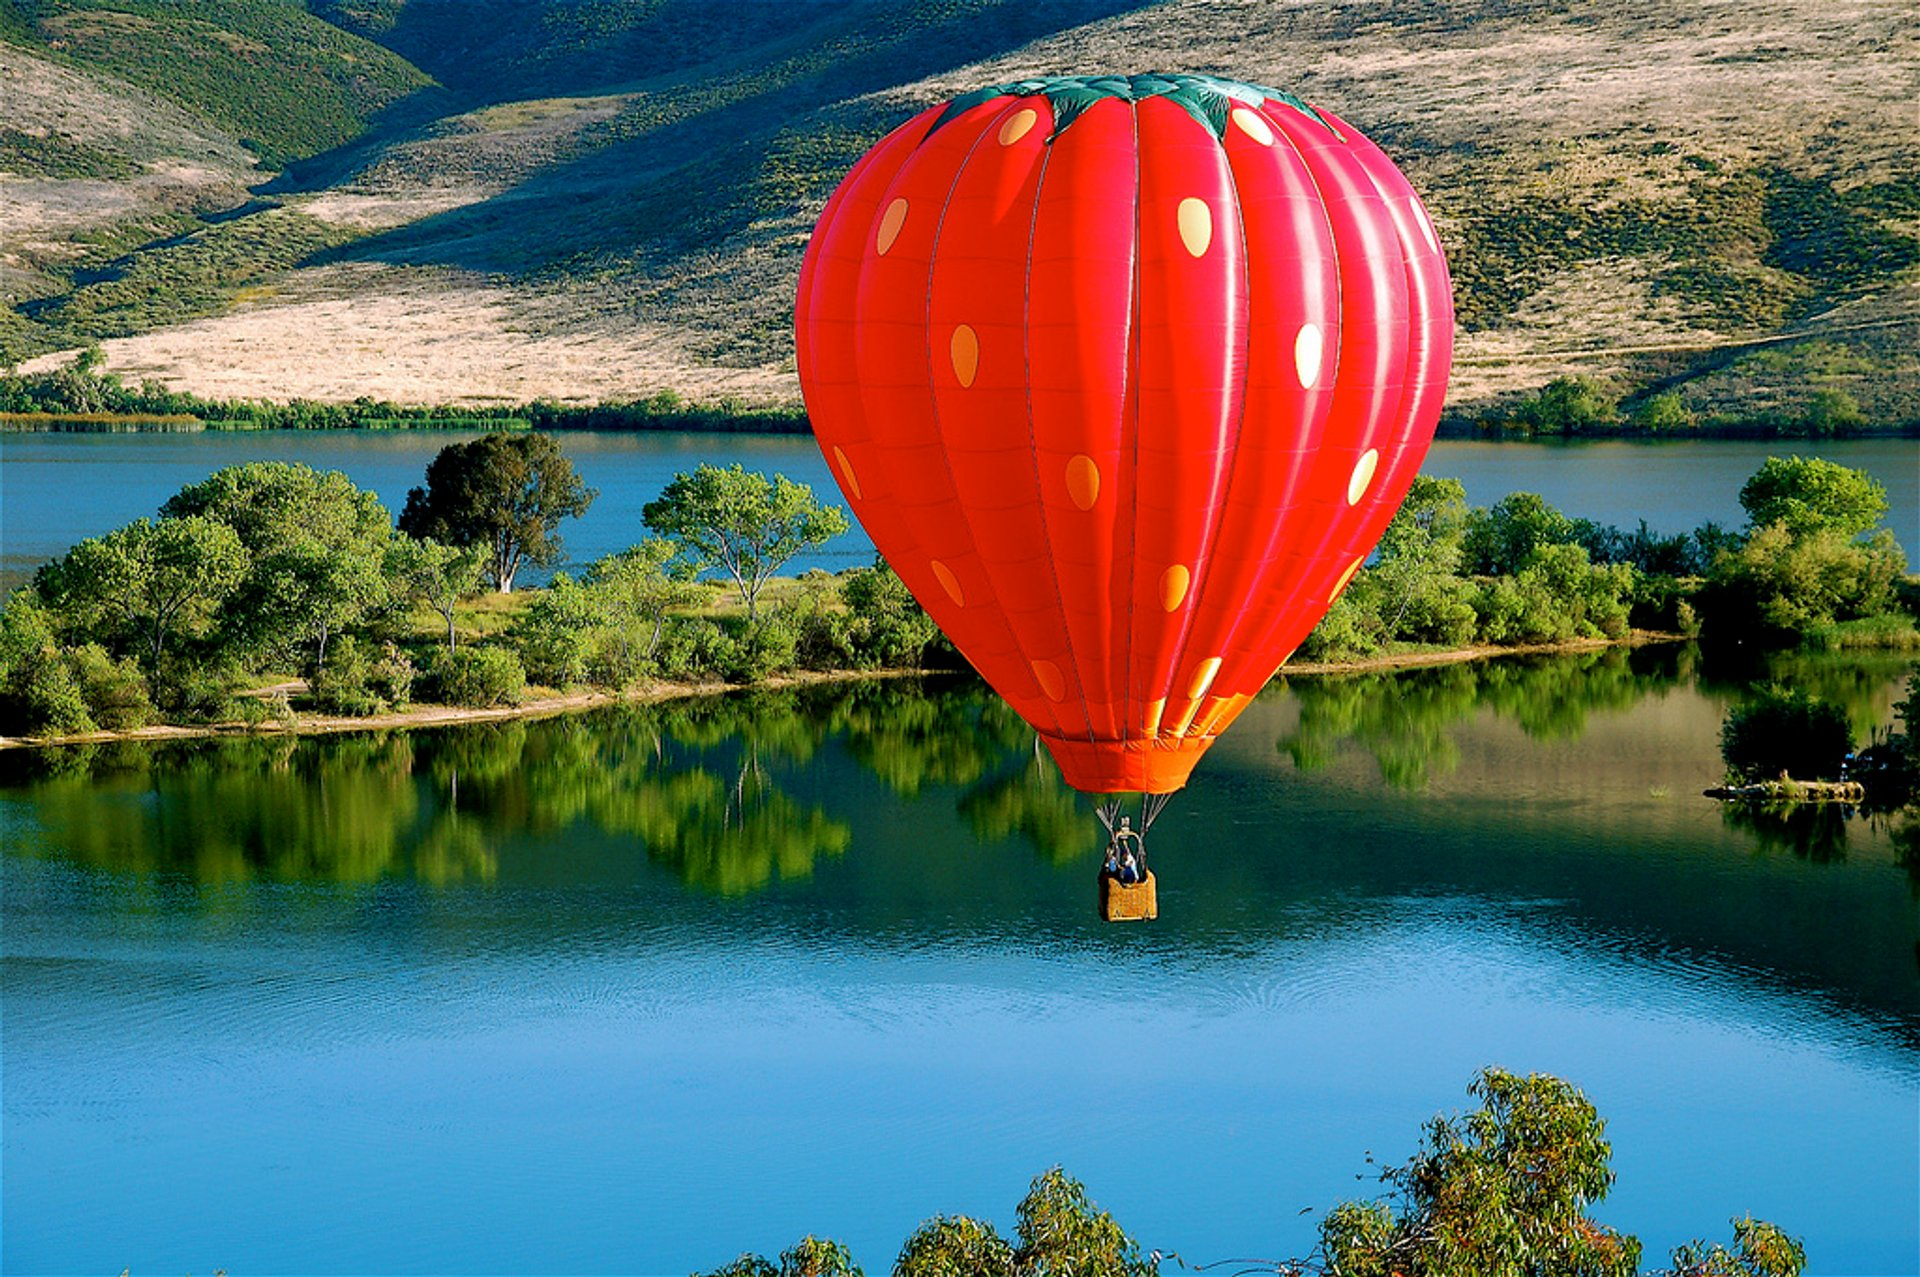 Temecula Valley Balloon & Wine Festival in California - Best Time